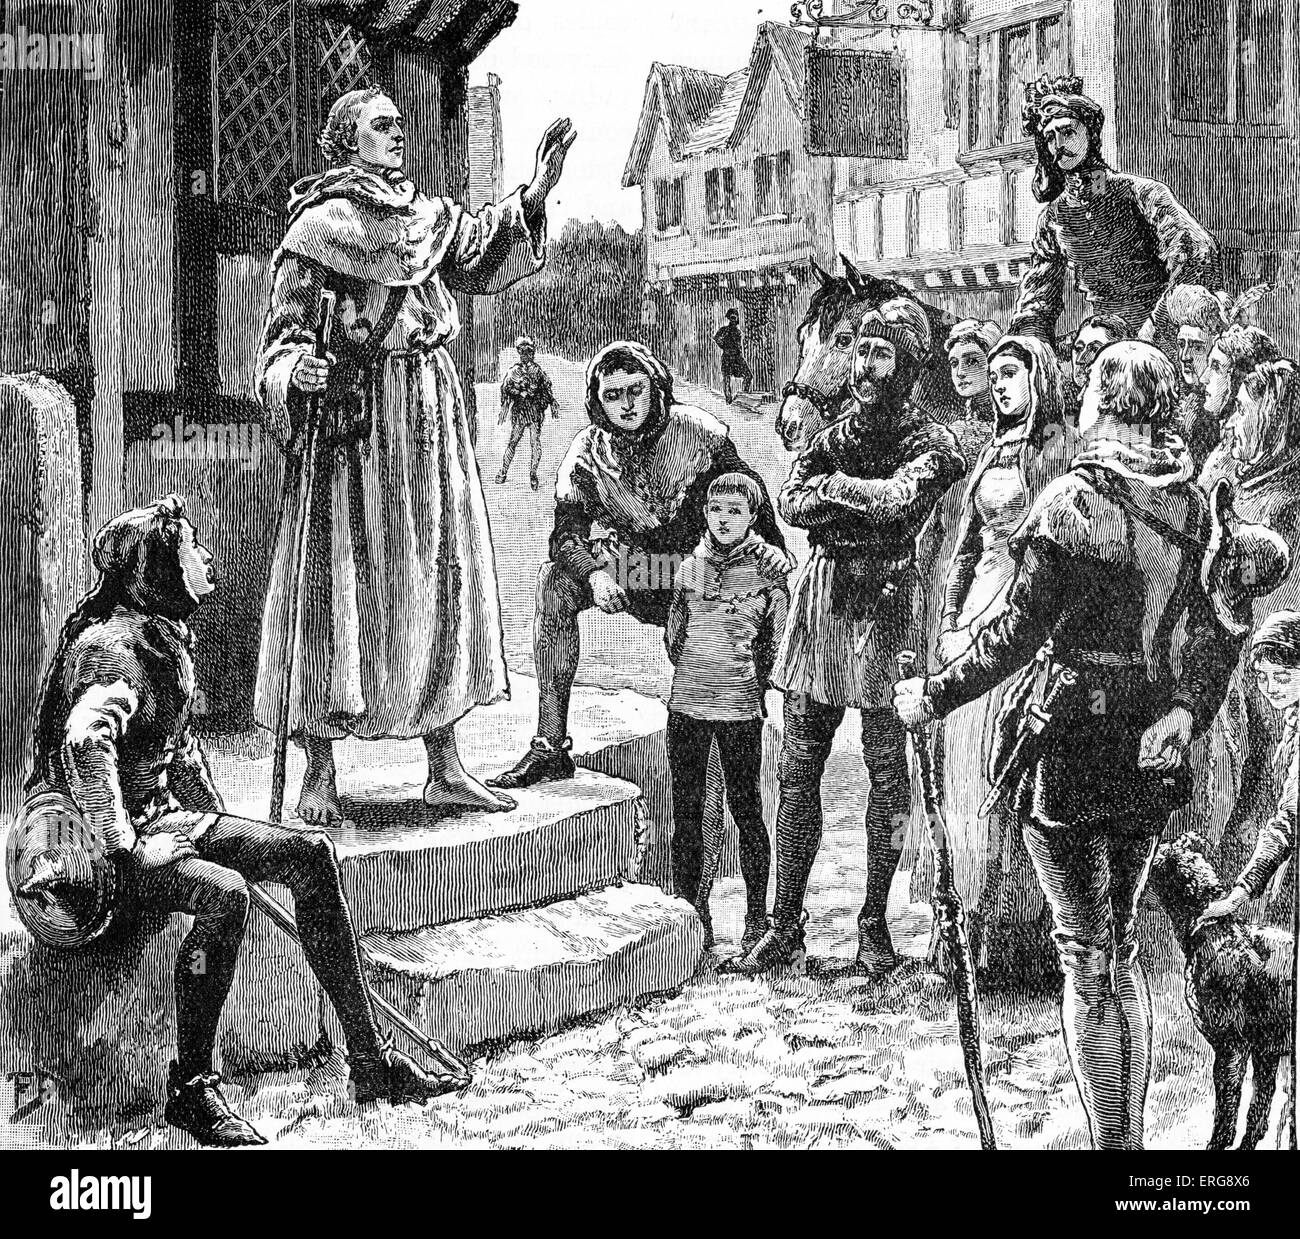 John Wycliffe 's 'poor priests' - preaching. Wycliffe campaigned for the end of the hierarchy of the Catholic church.  English Stock Photo